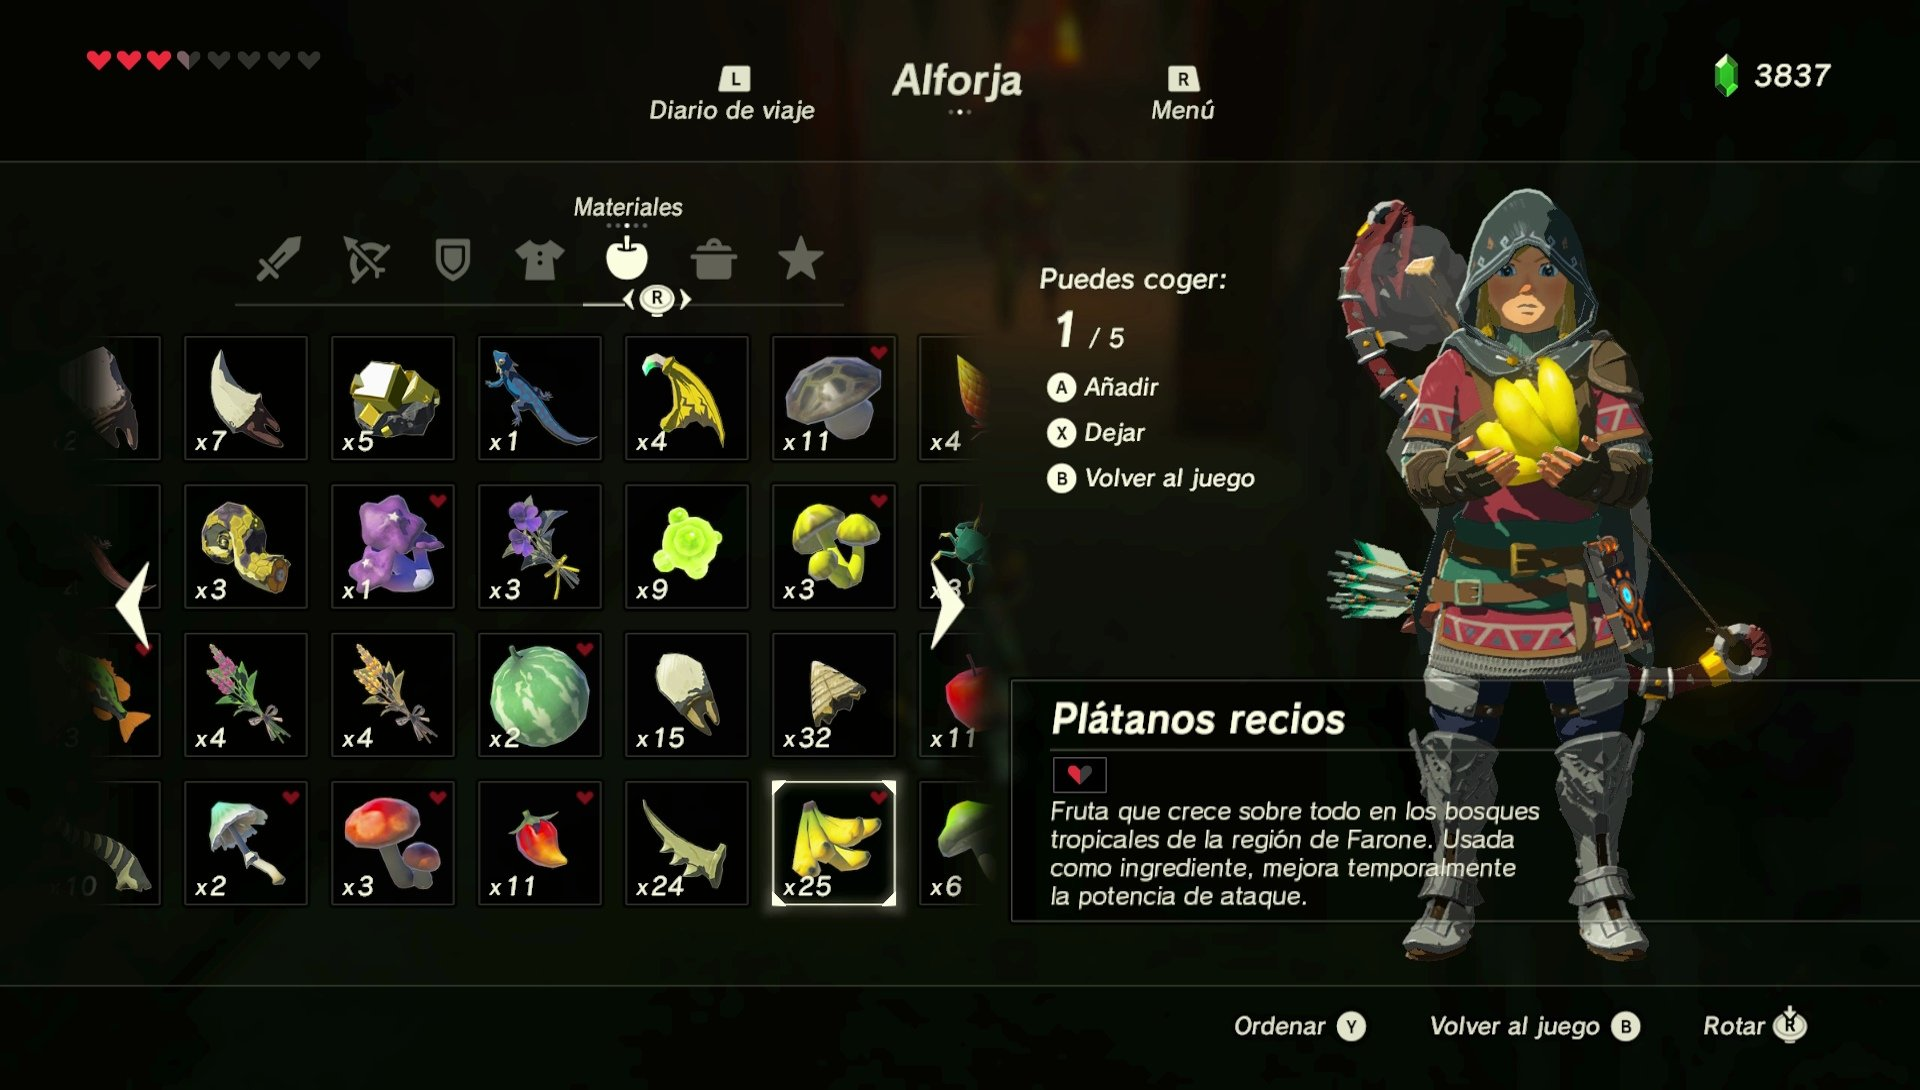 Analisis De The Legend Of Zelda Breath Of The Wild Para Nintendo